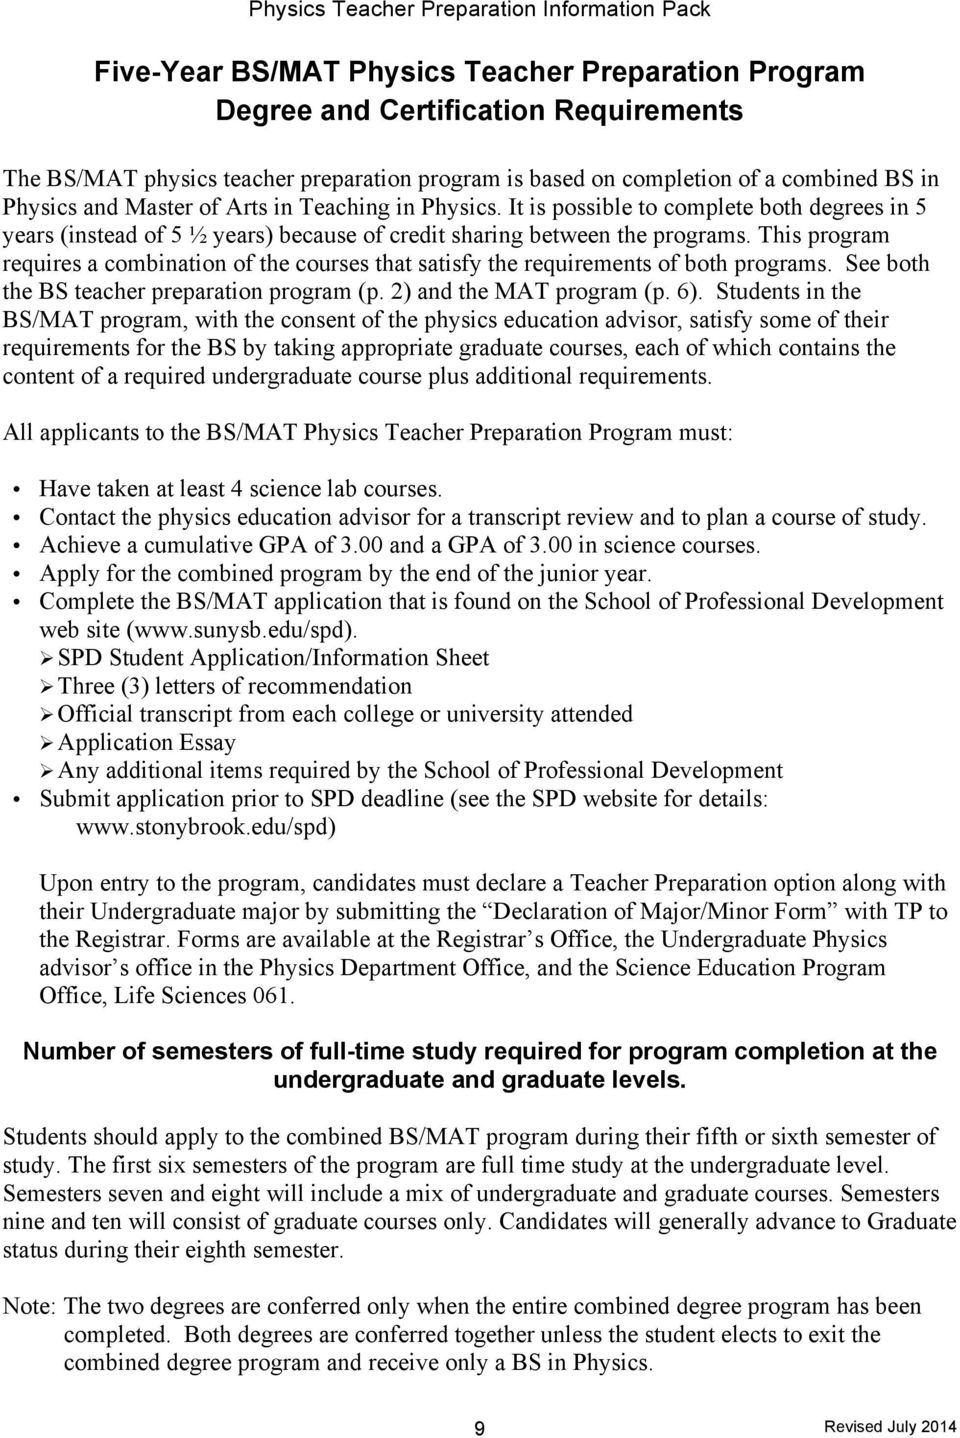 This program requires a combination of the courses that satisfy the requirements of both programs. See both the BS teacher preparation program (p. 2) and the MAT program (p. 6).